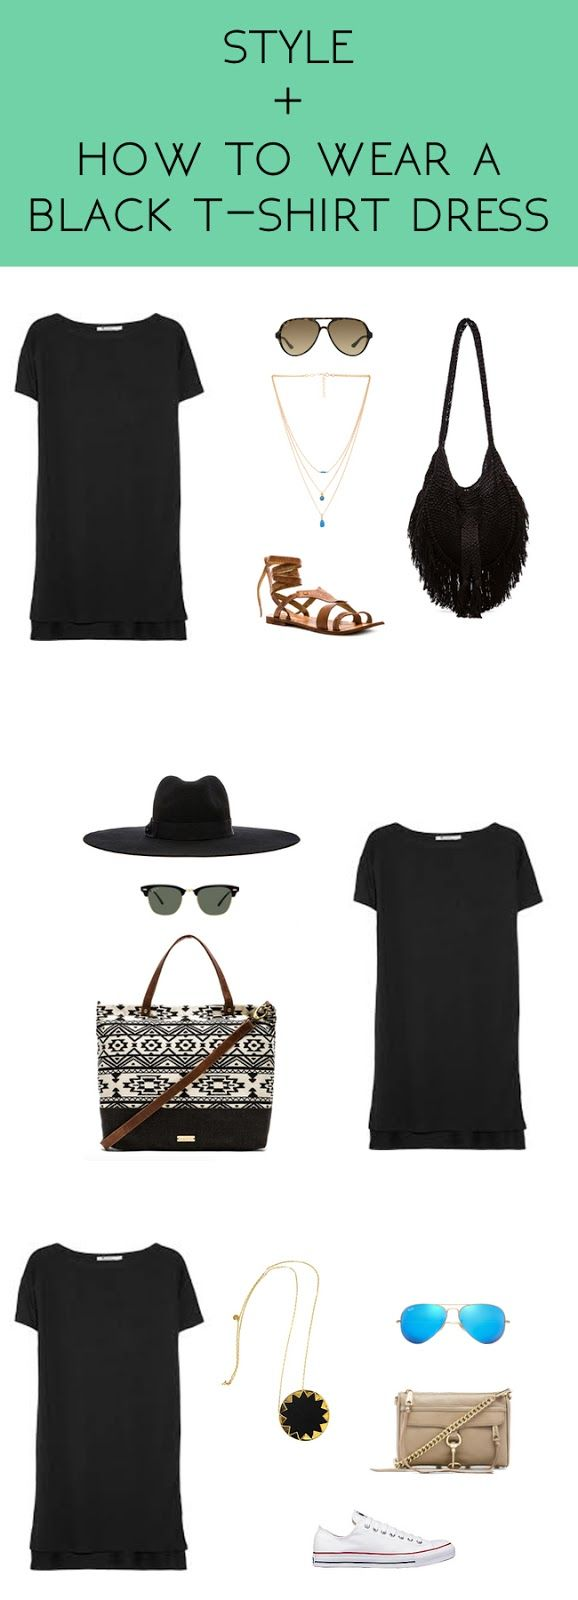 Black t shirt goes with - Whimsical Charm Style How To Wear A Black T Shirt Dress